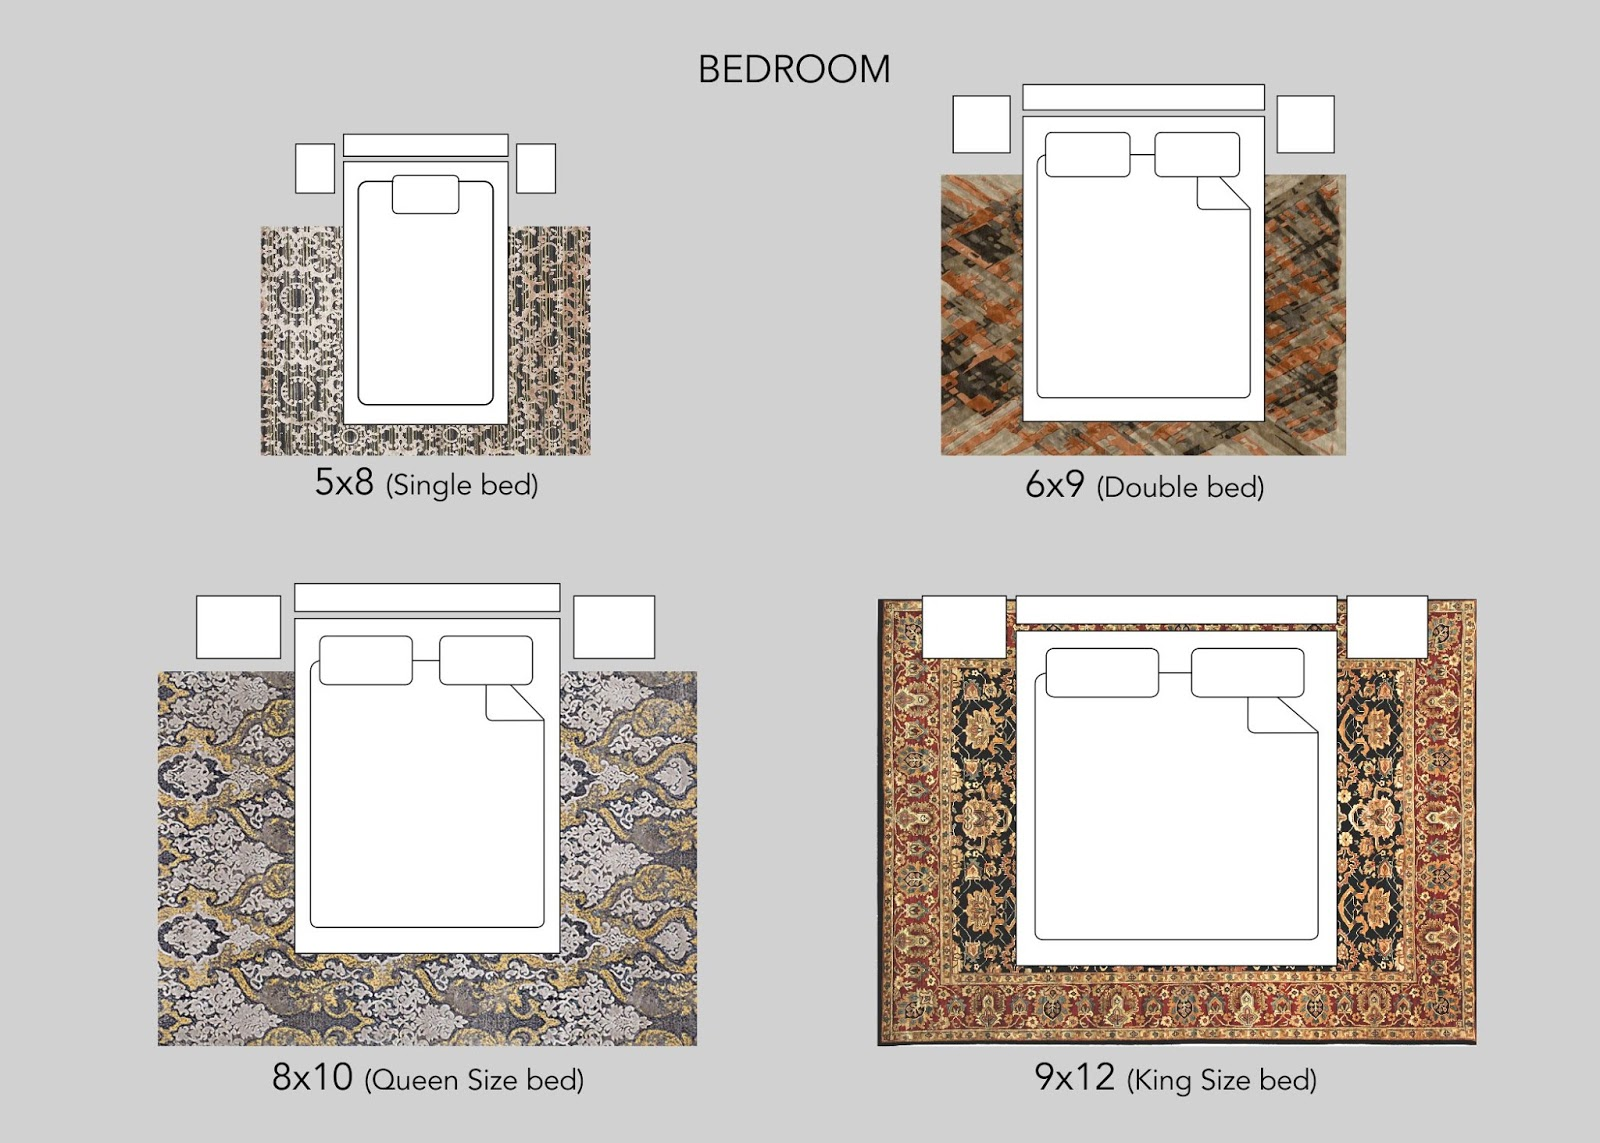 Choosing the Right Rug Size for Bedroom  (Part - II)